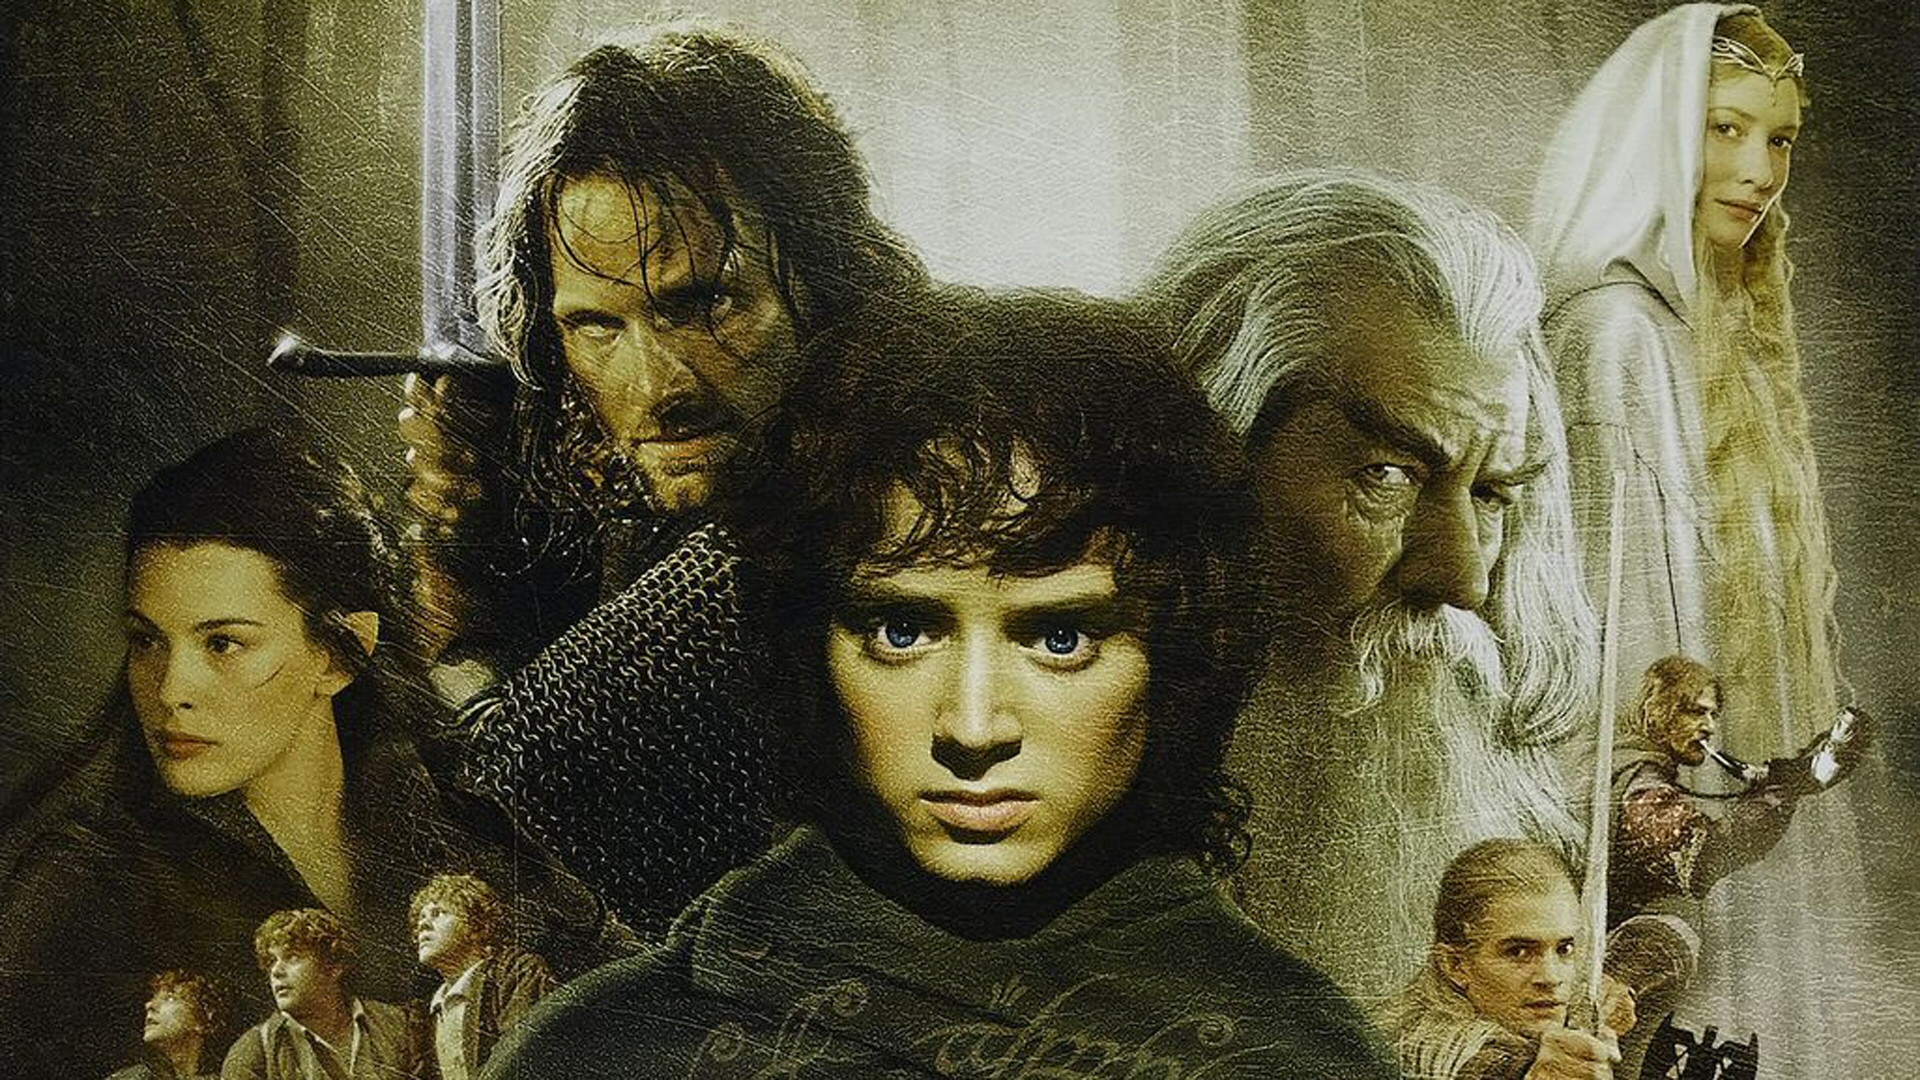 The Lord of the Rings Wallpapers Wallpaperholic 1920x1080